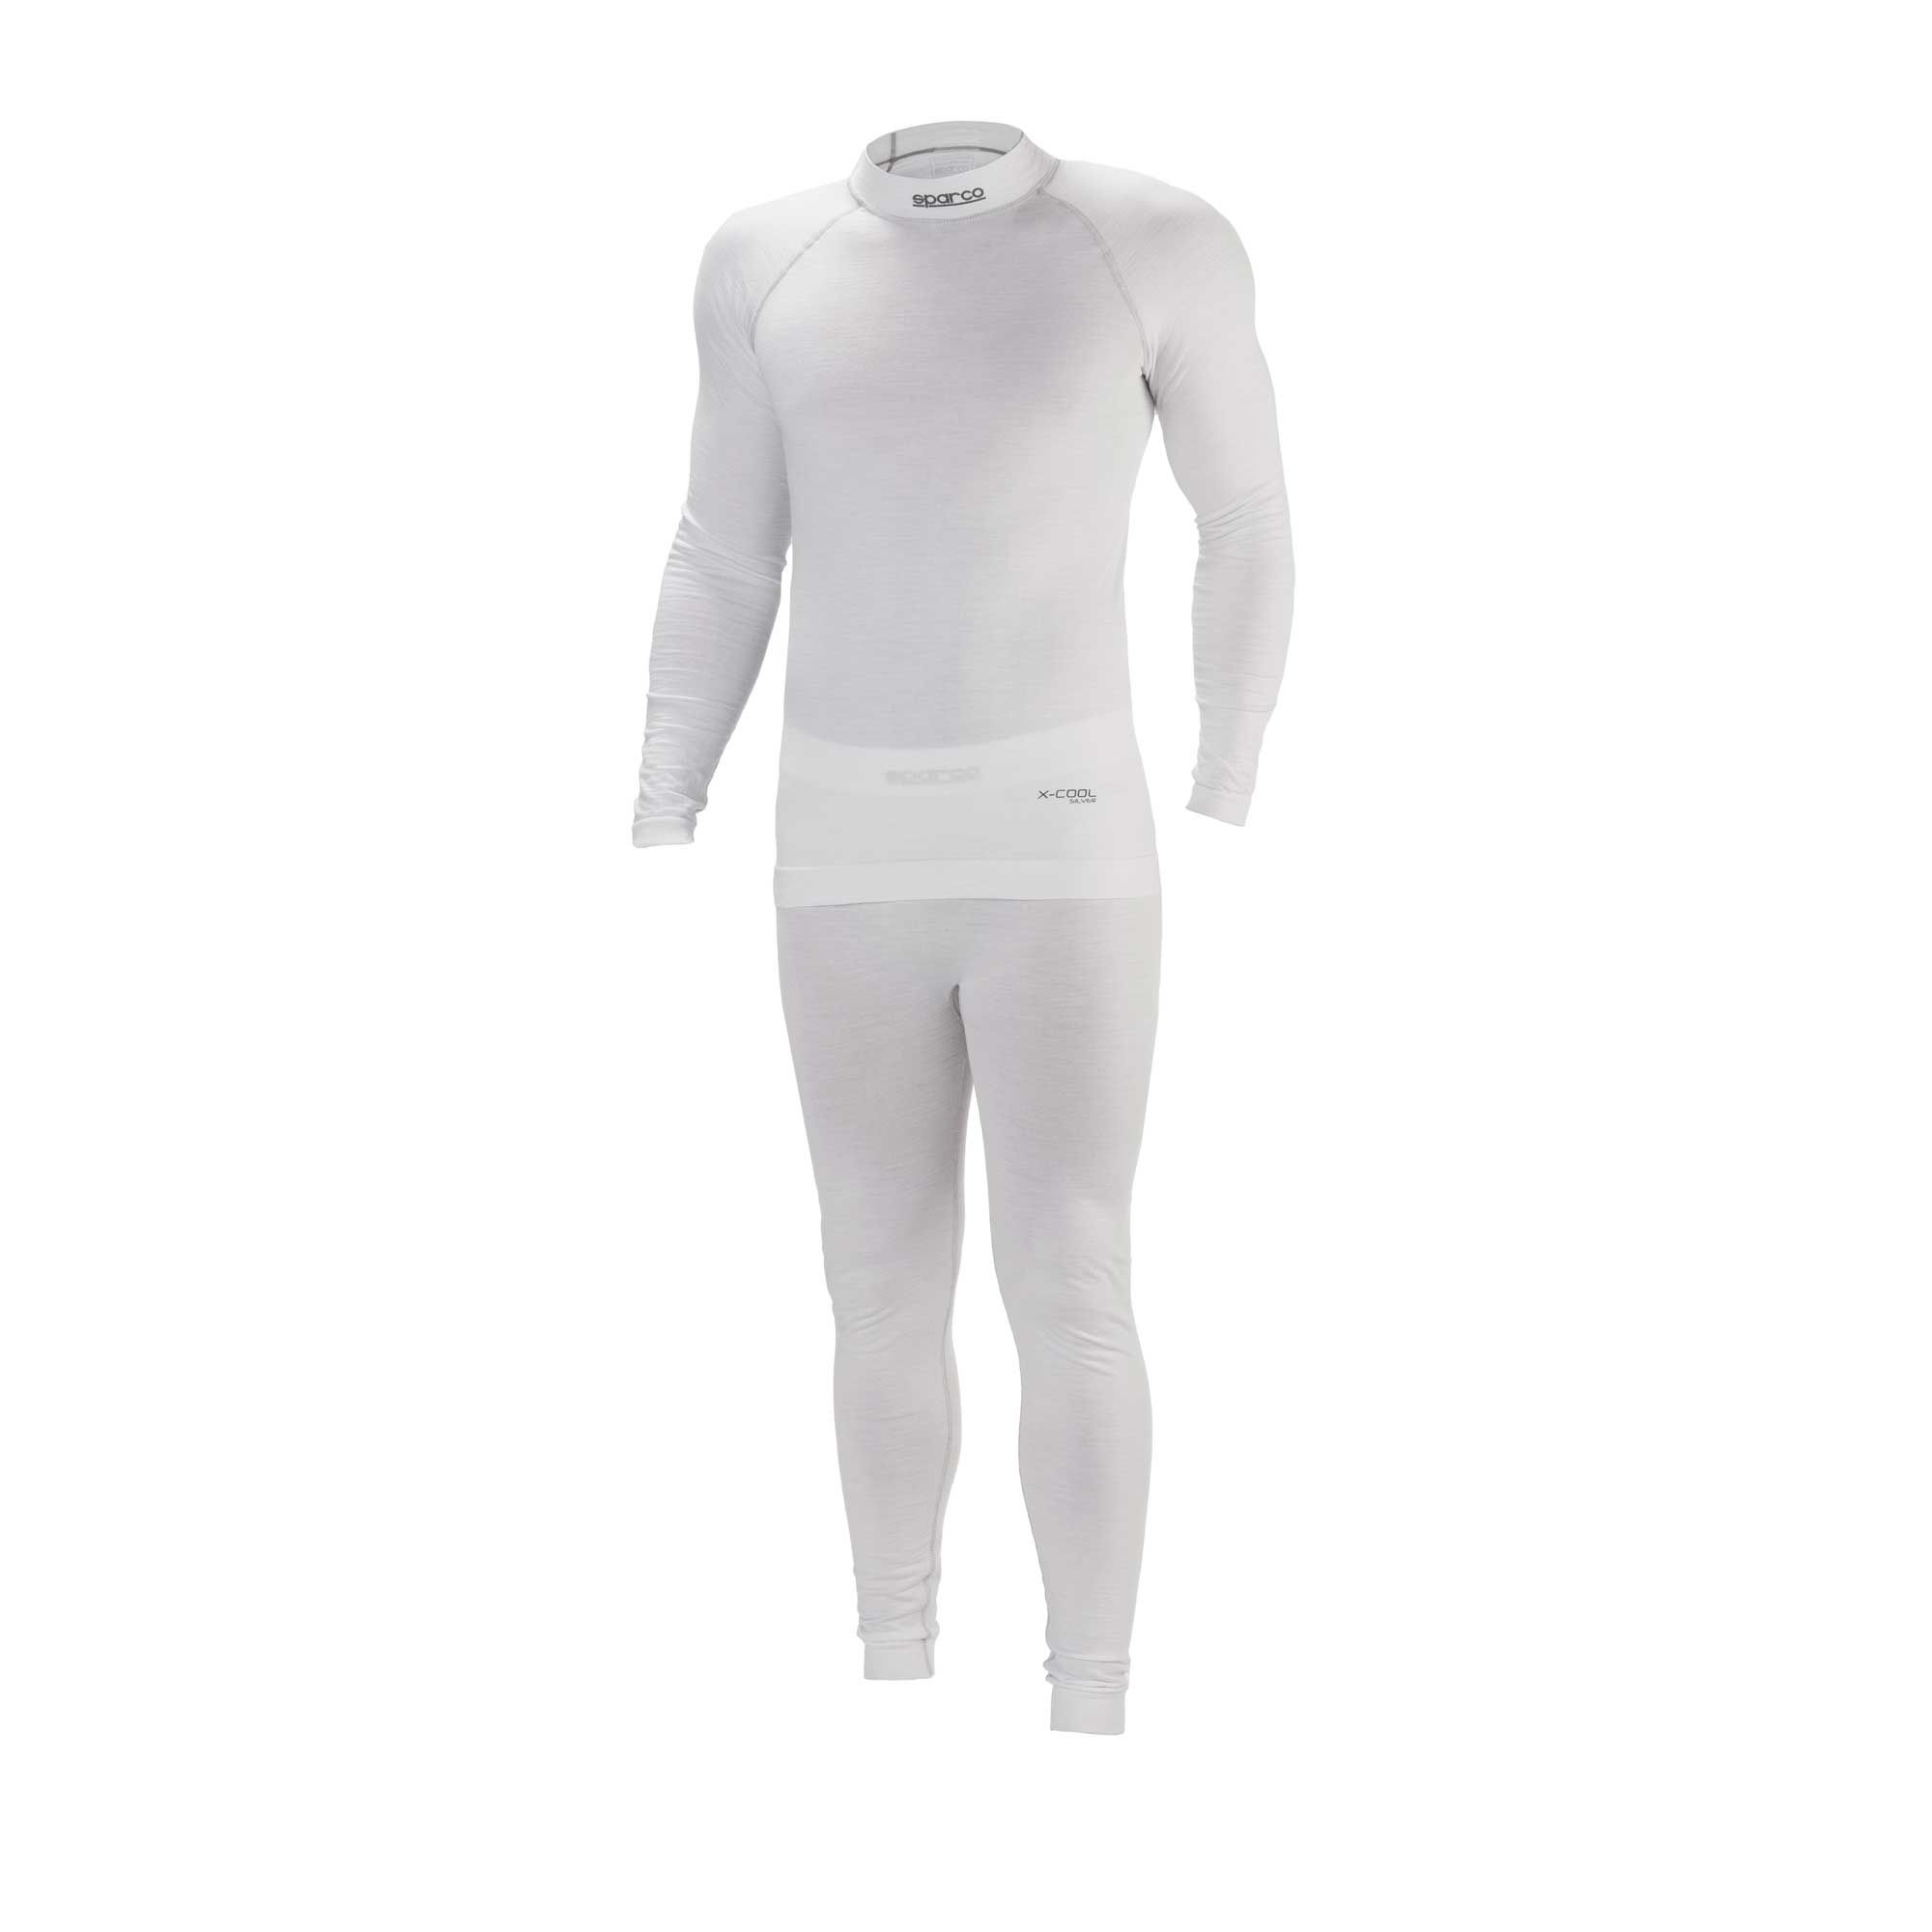 00175P Sparco Shield RW-9 Nomex X-Cool Long Johns FIA Approved Pants